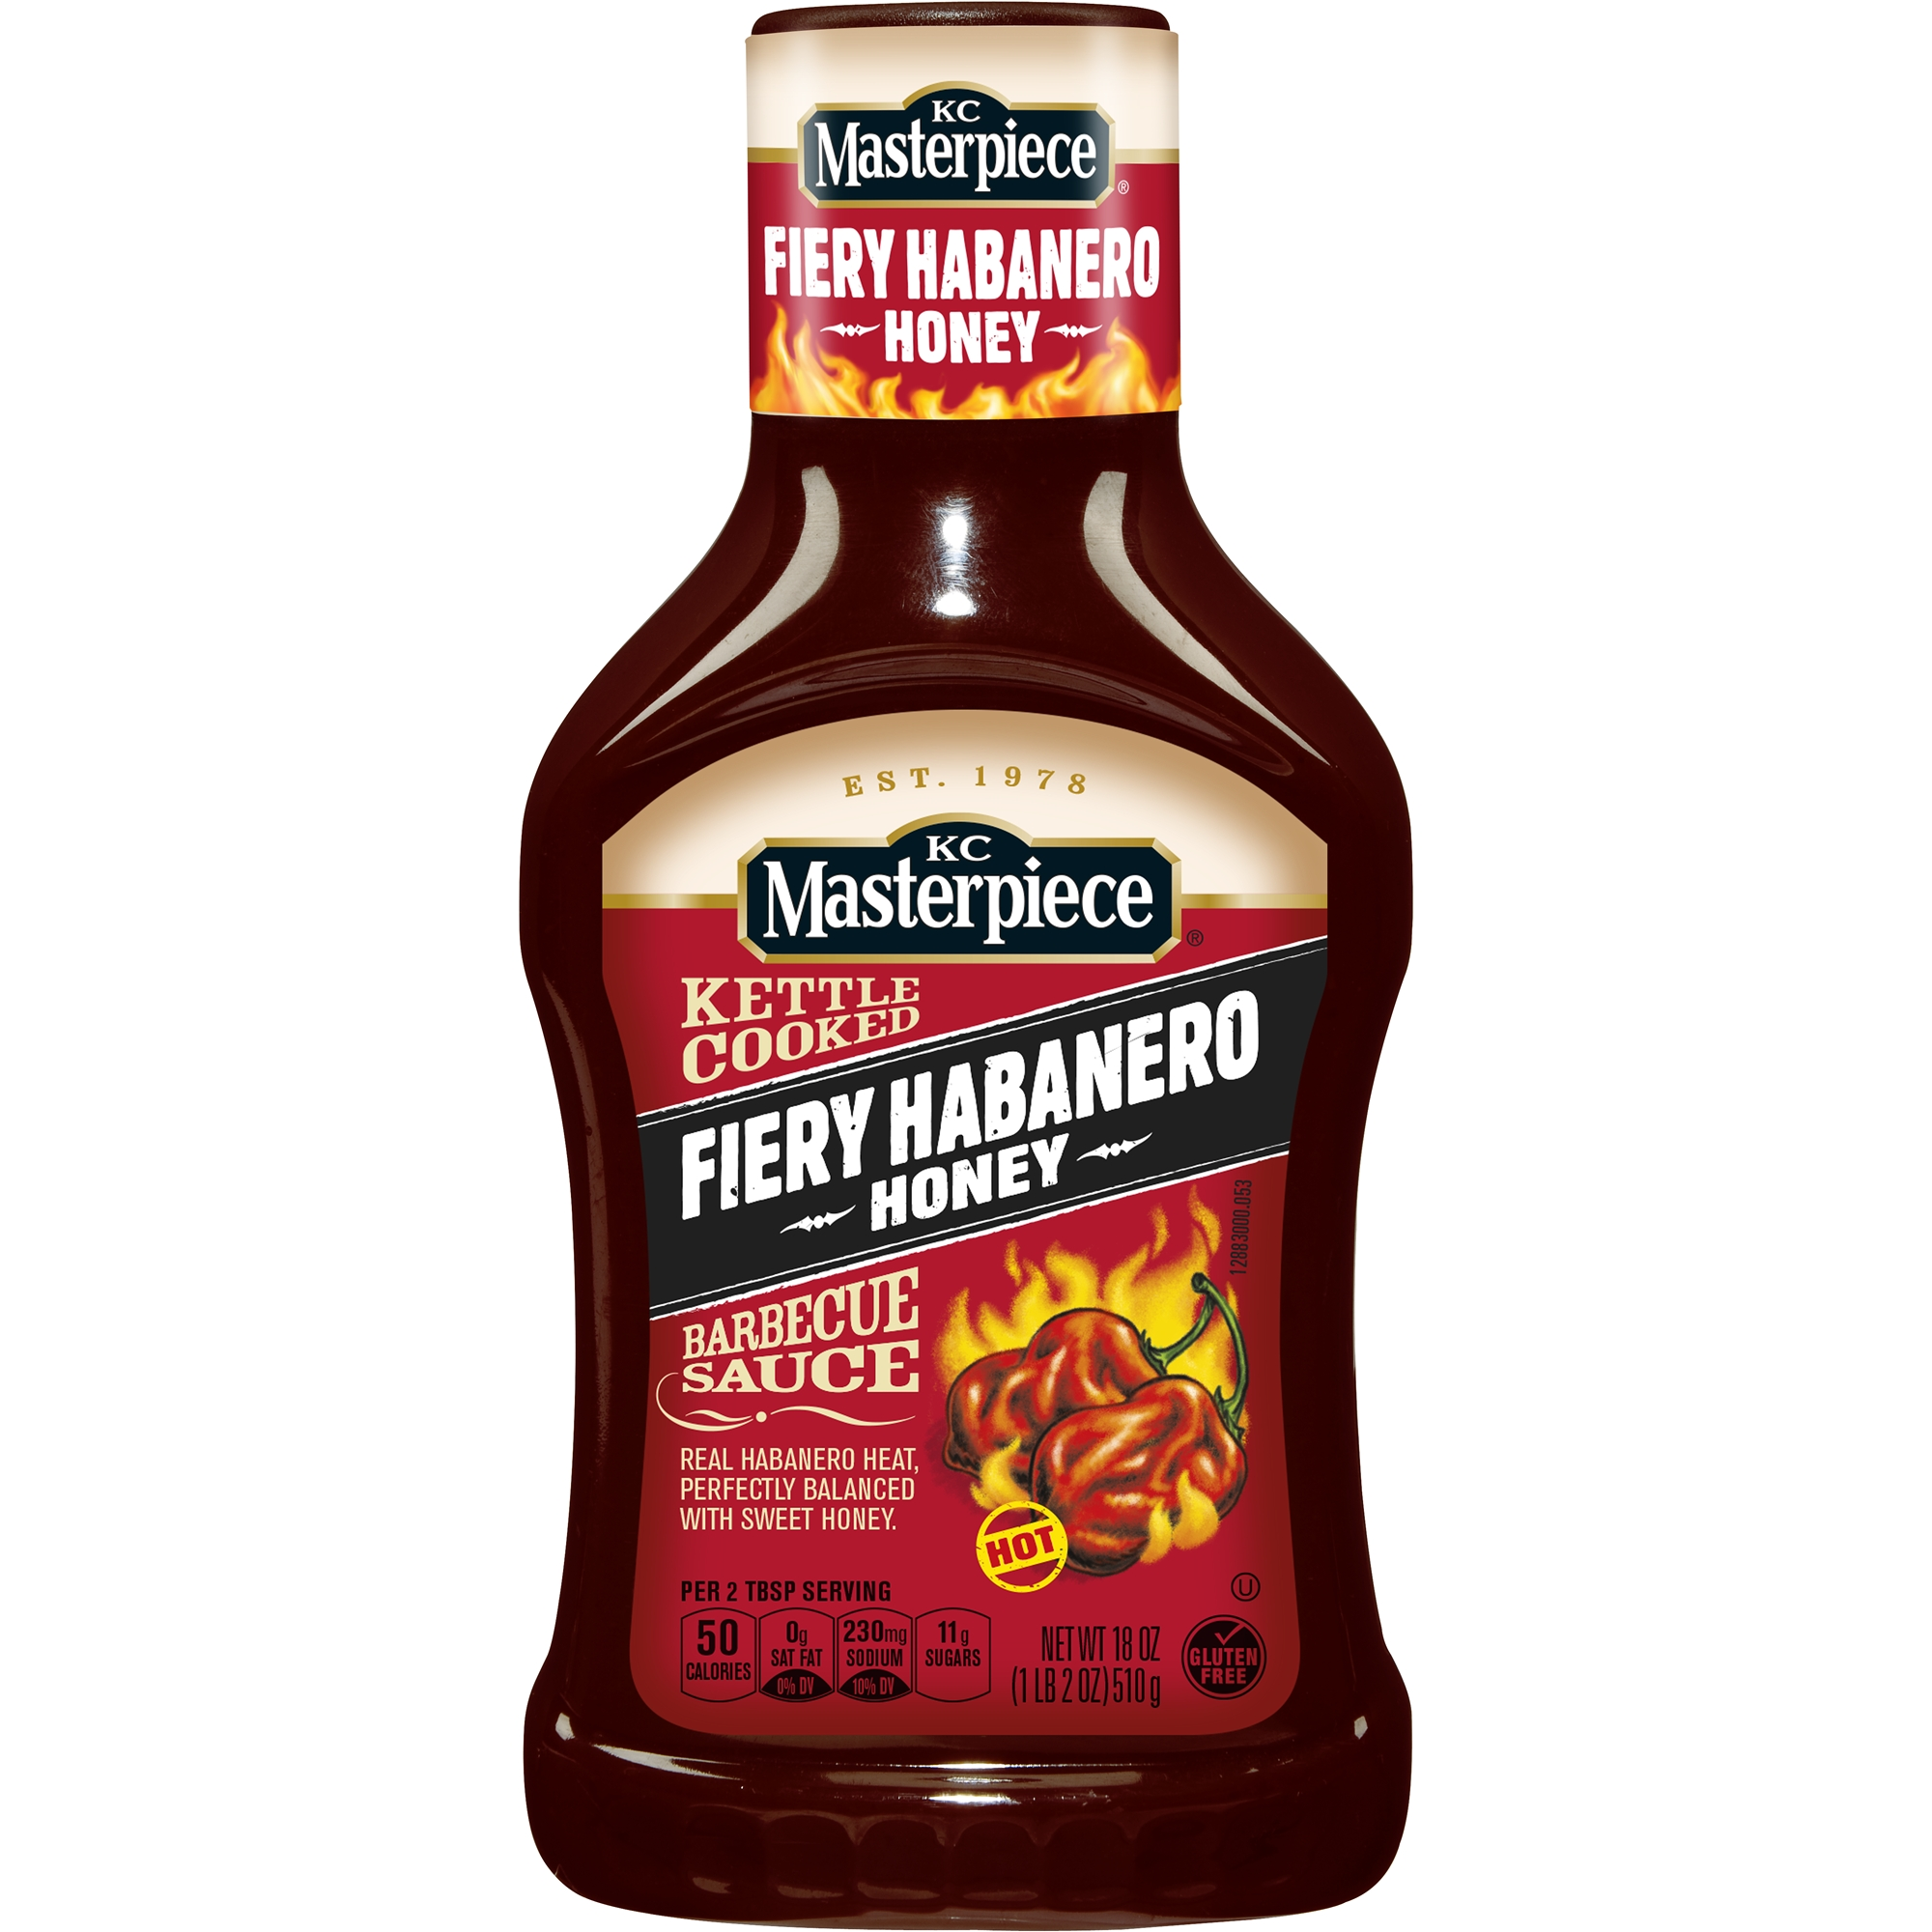 <mark>KC</mark> <mark>Masterpiece</mark> Fiery Habanero Honey Barbecue Sauce, 18 oz